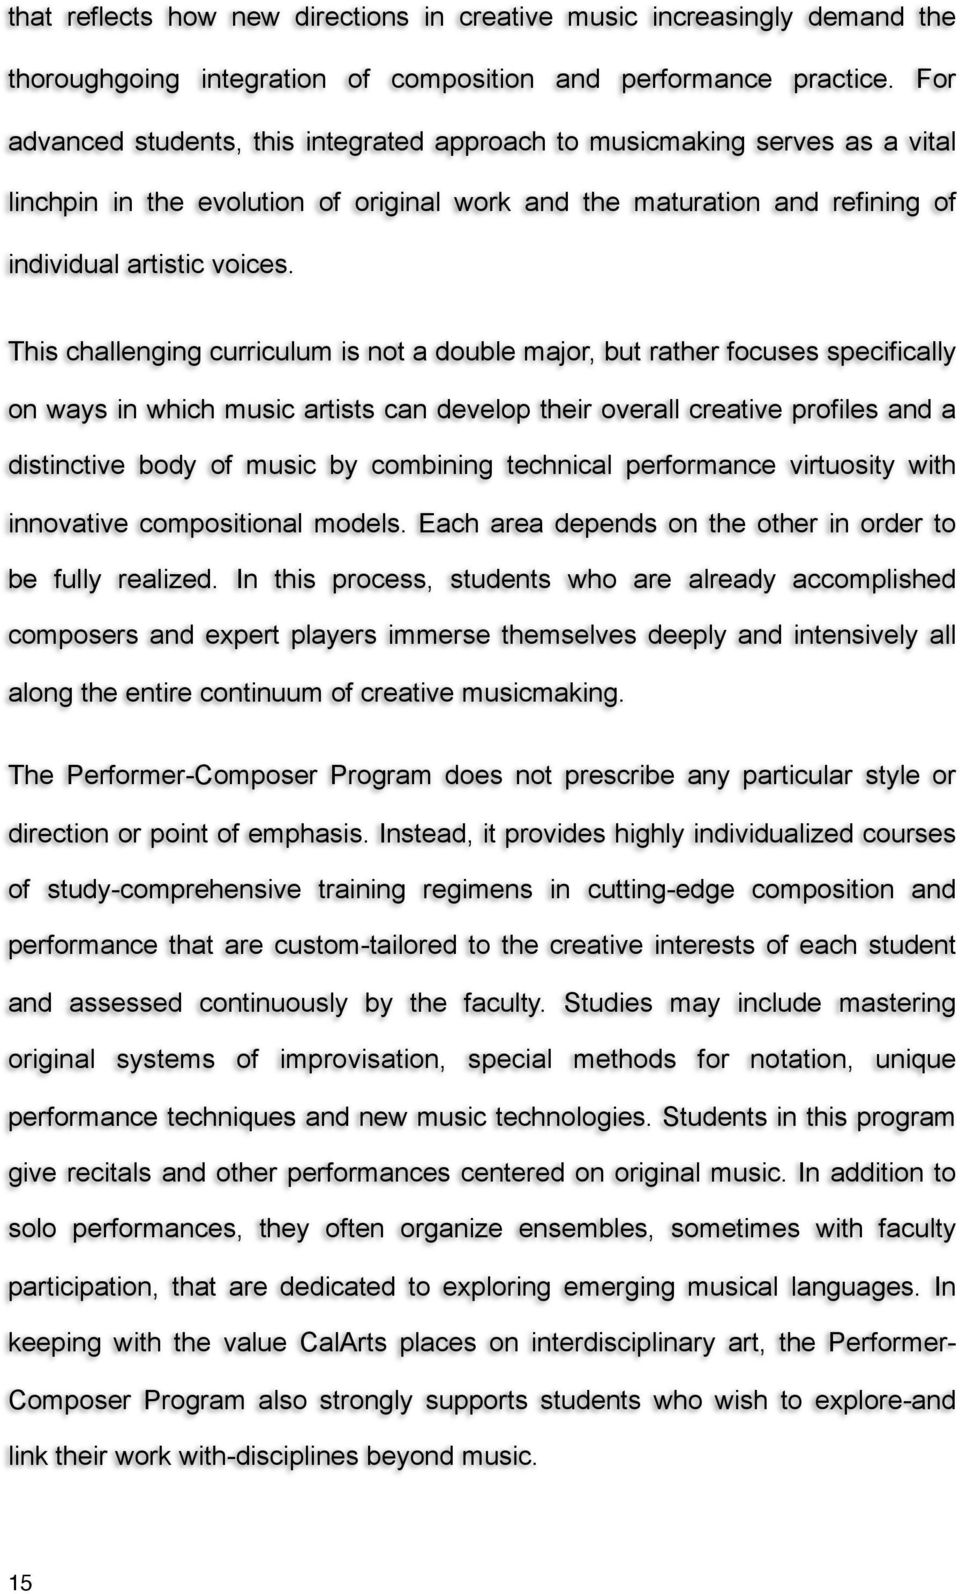 This challenging curriculum is not a double major, but rather focuses specifically on ways in which music artists can develop their overall creative profiles and a distinctive body of music by